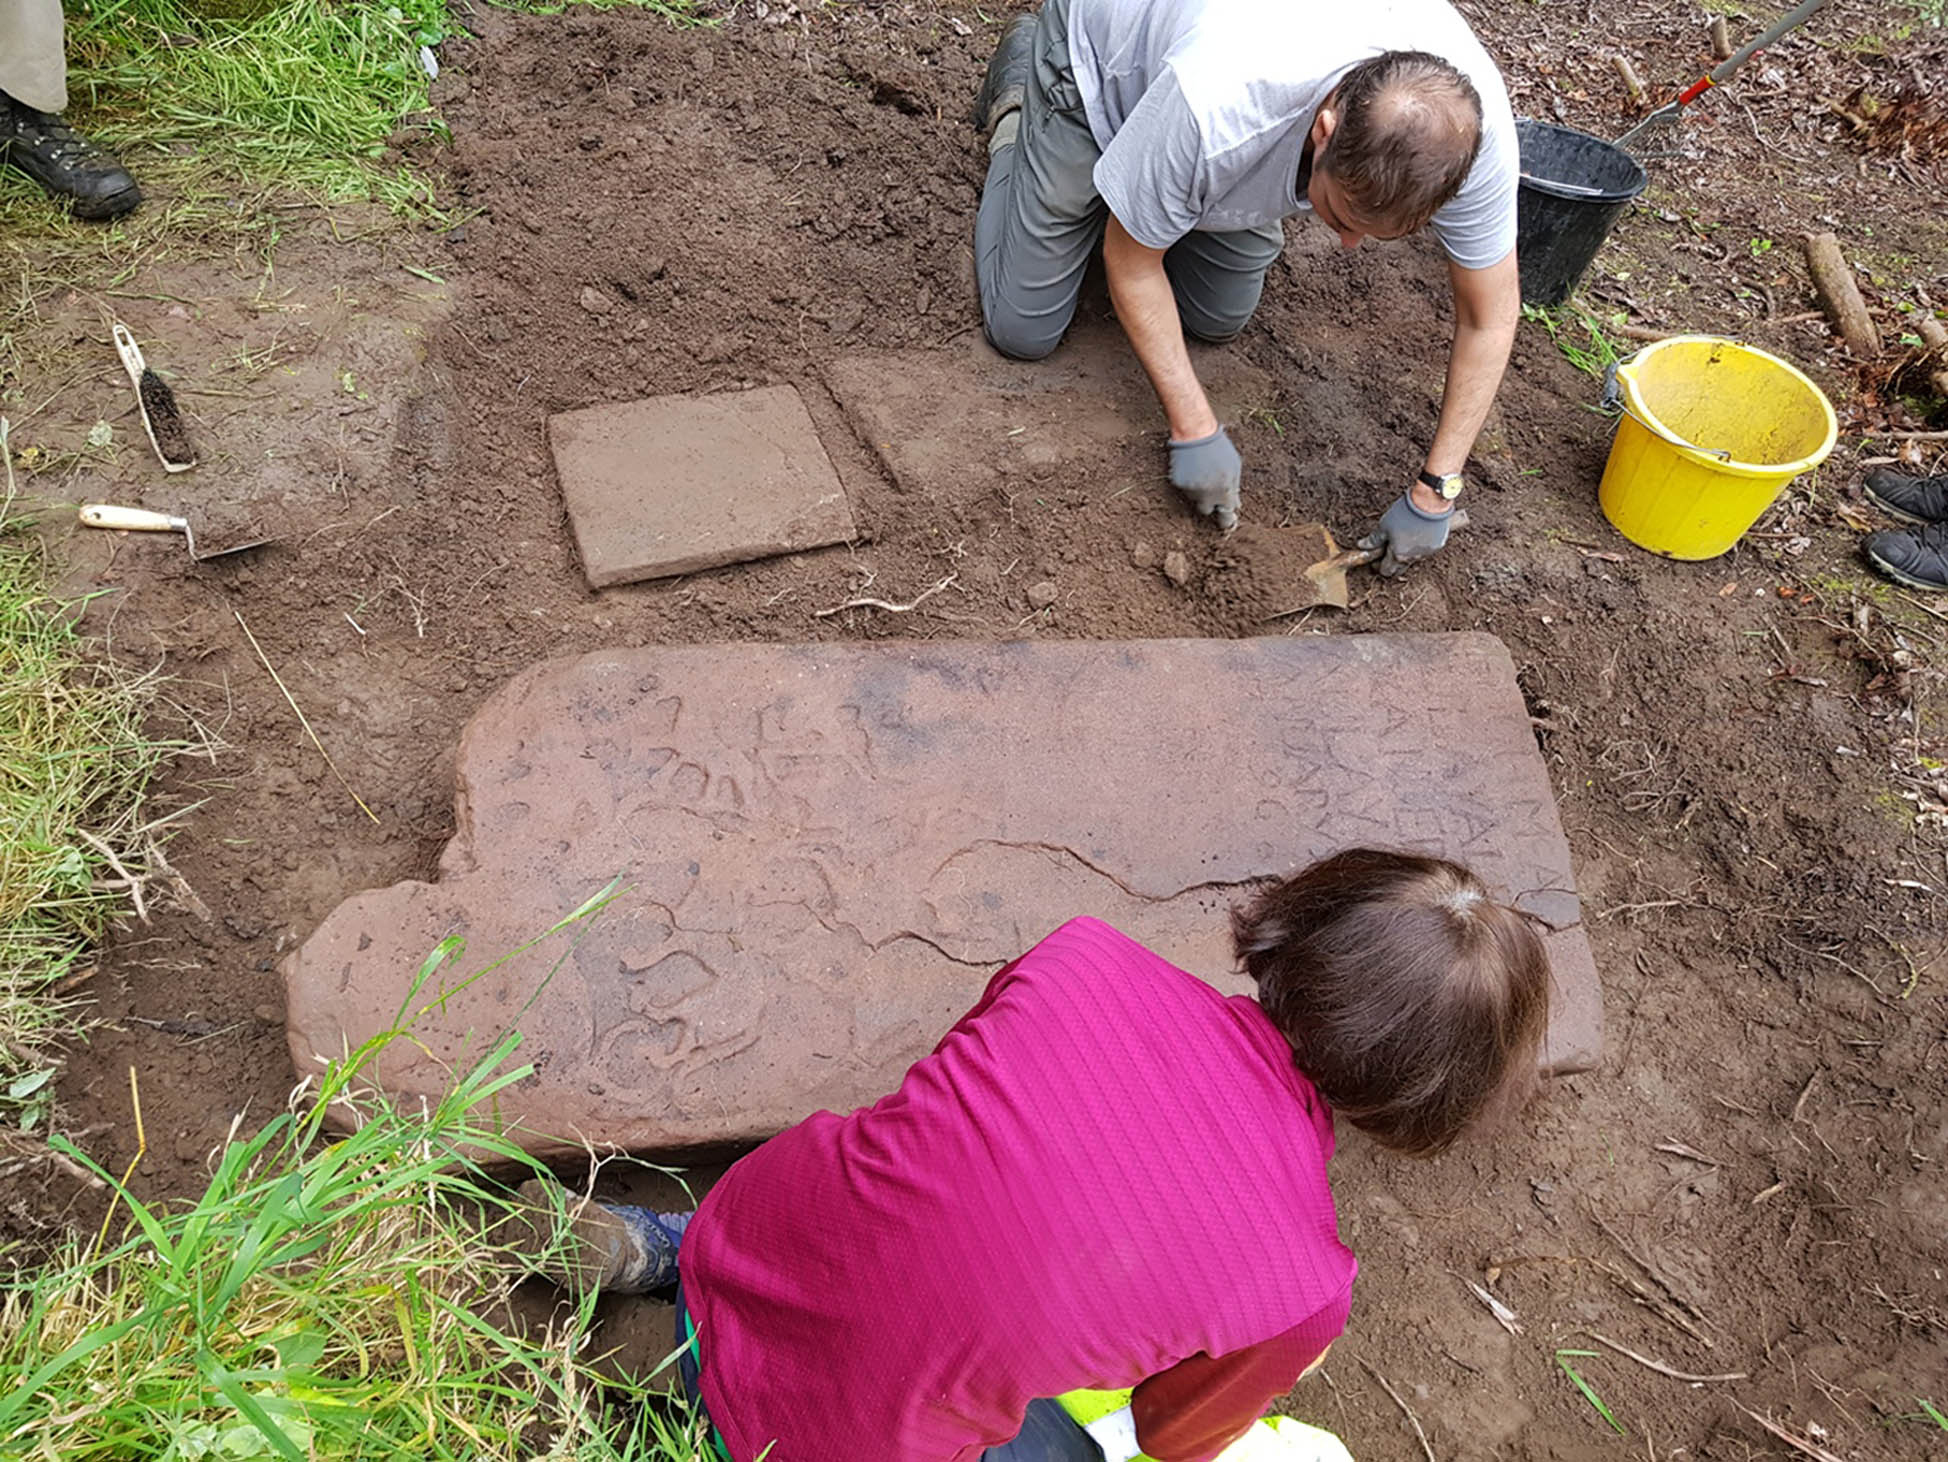 'Once in a lifetime' Pictish stone found in Highlands